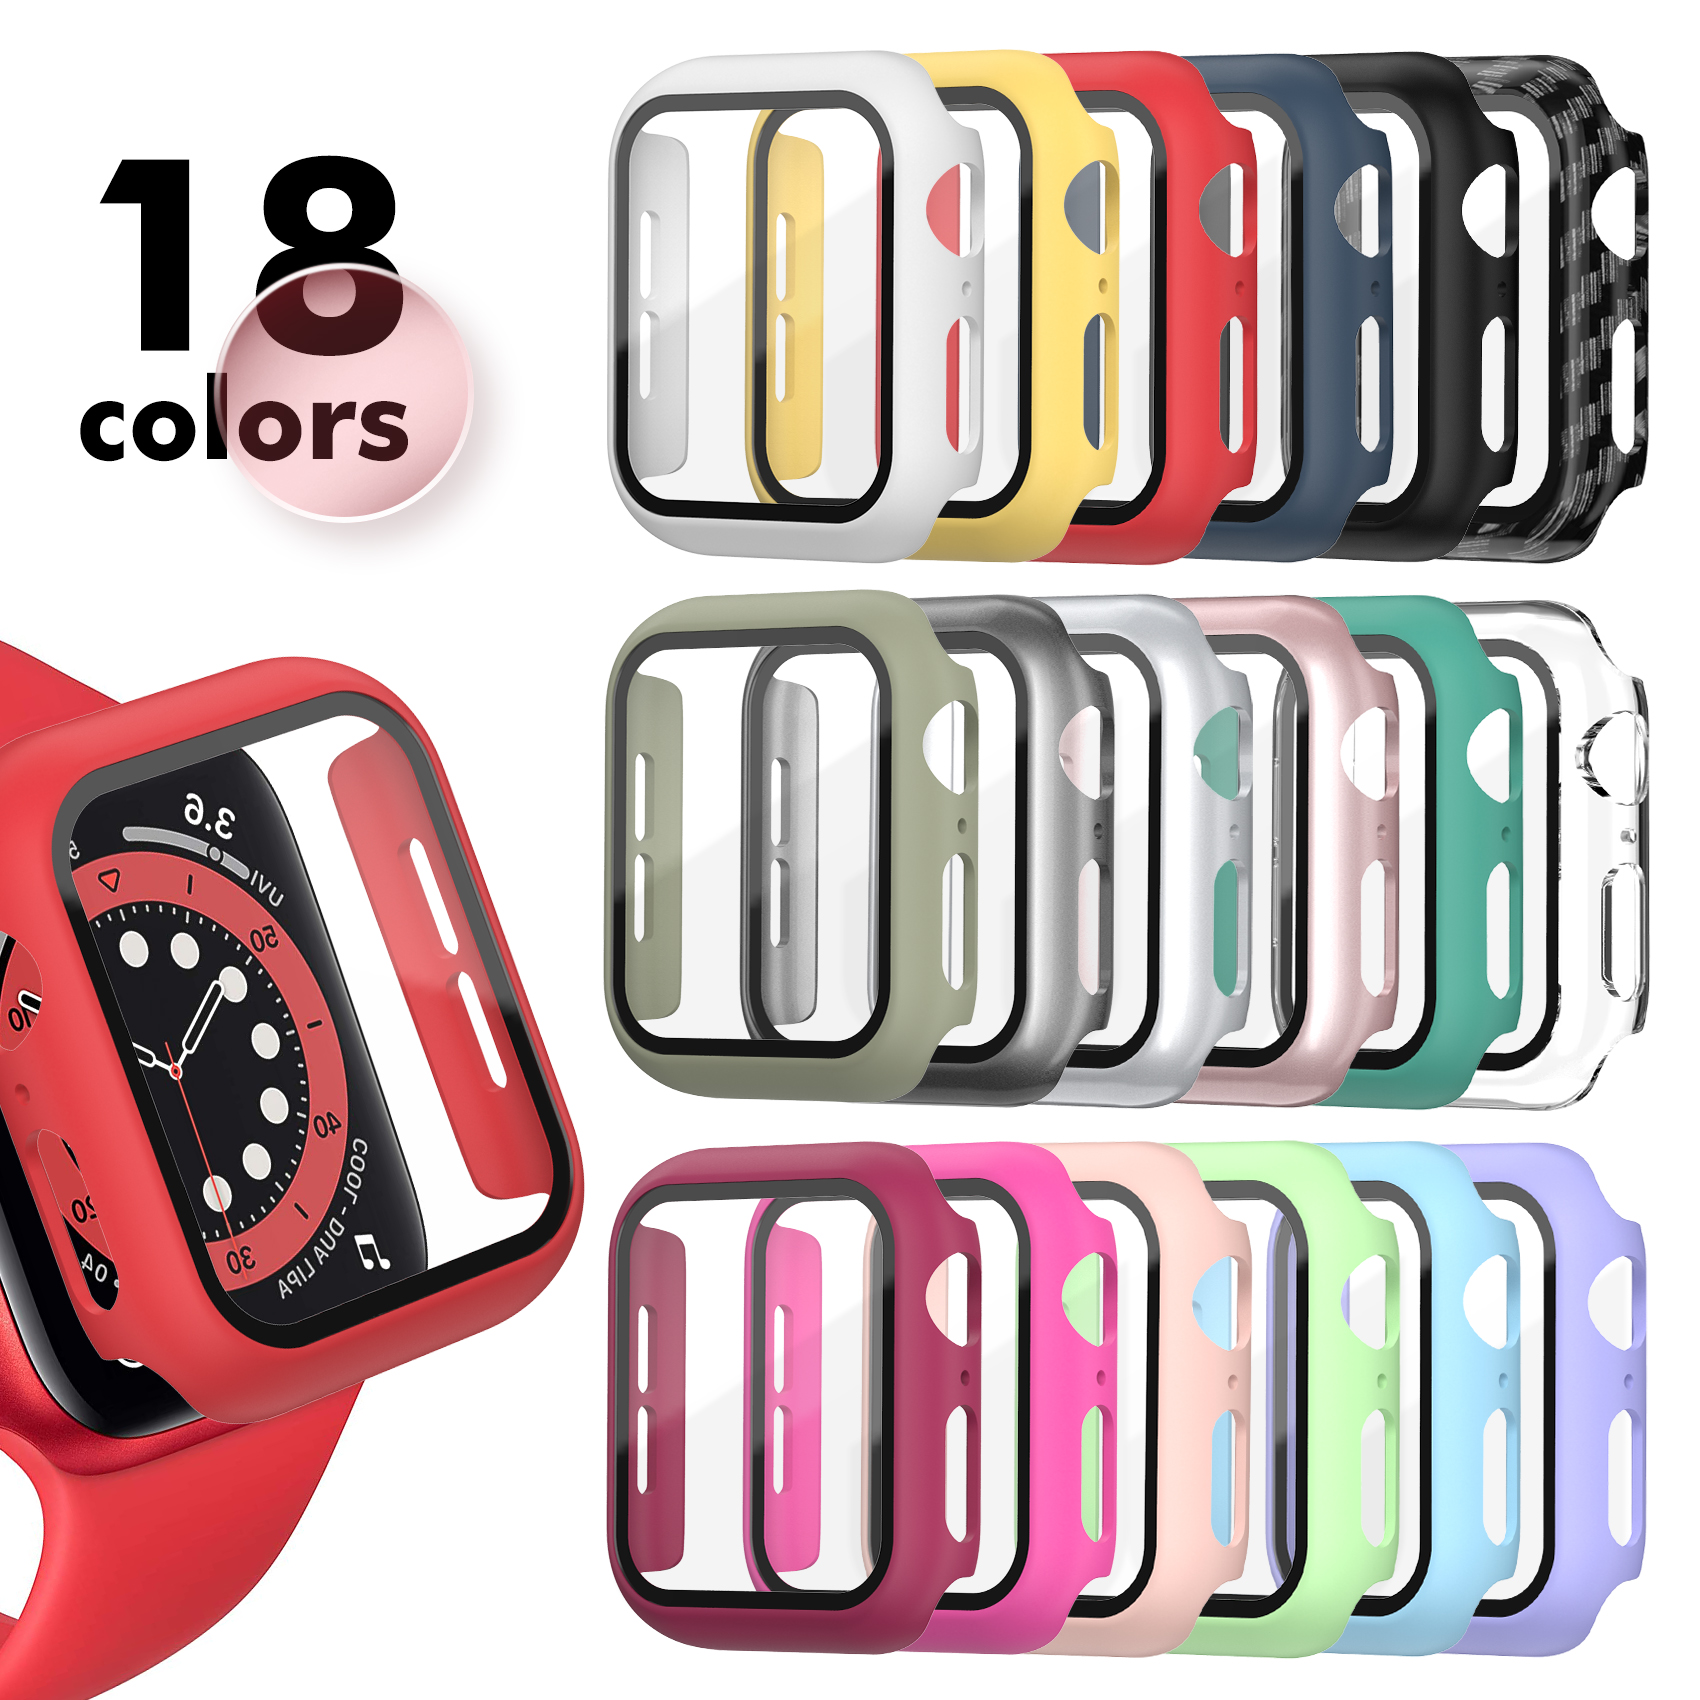 Tempered Glass+Matte Watch Cover for Apple Watch Case 44mm 40mm 42mm 38mm Bumper+Screen Protector for Iwatch SE 6 5 4 3 2 1